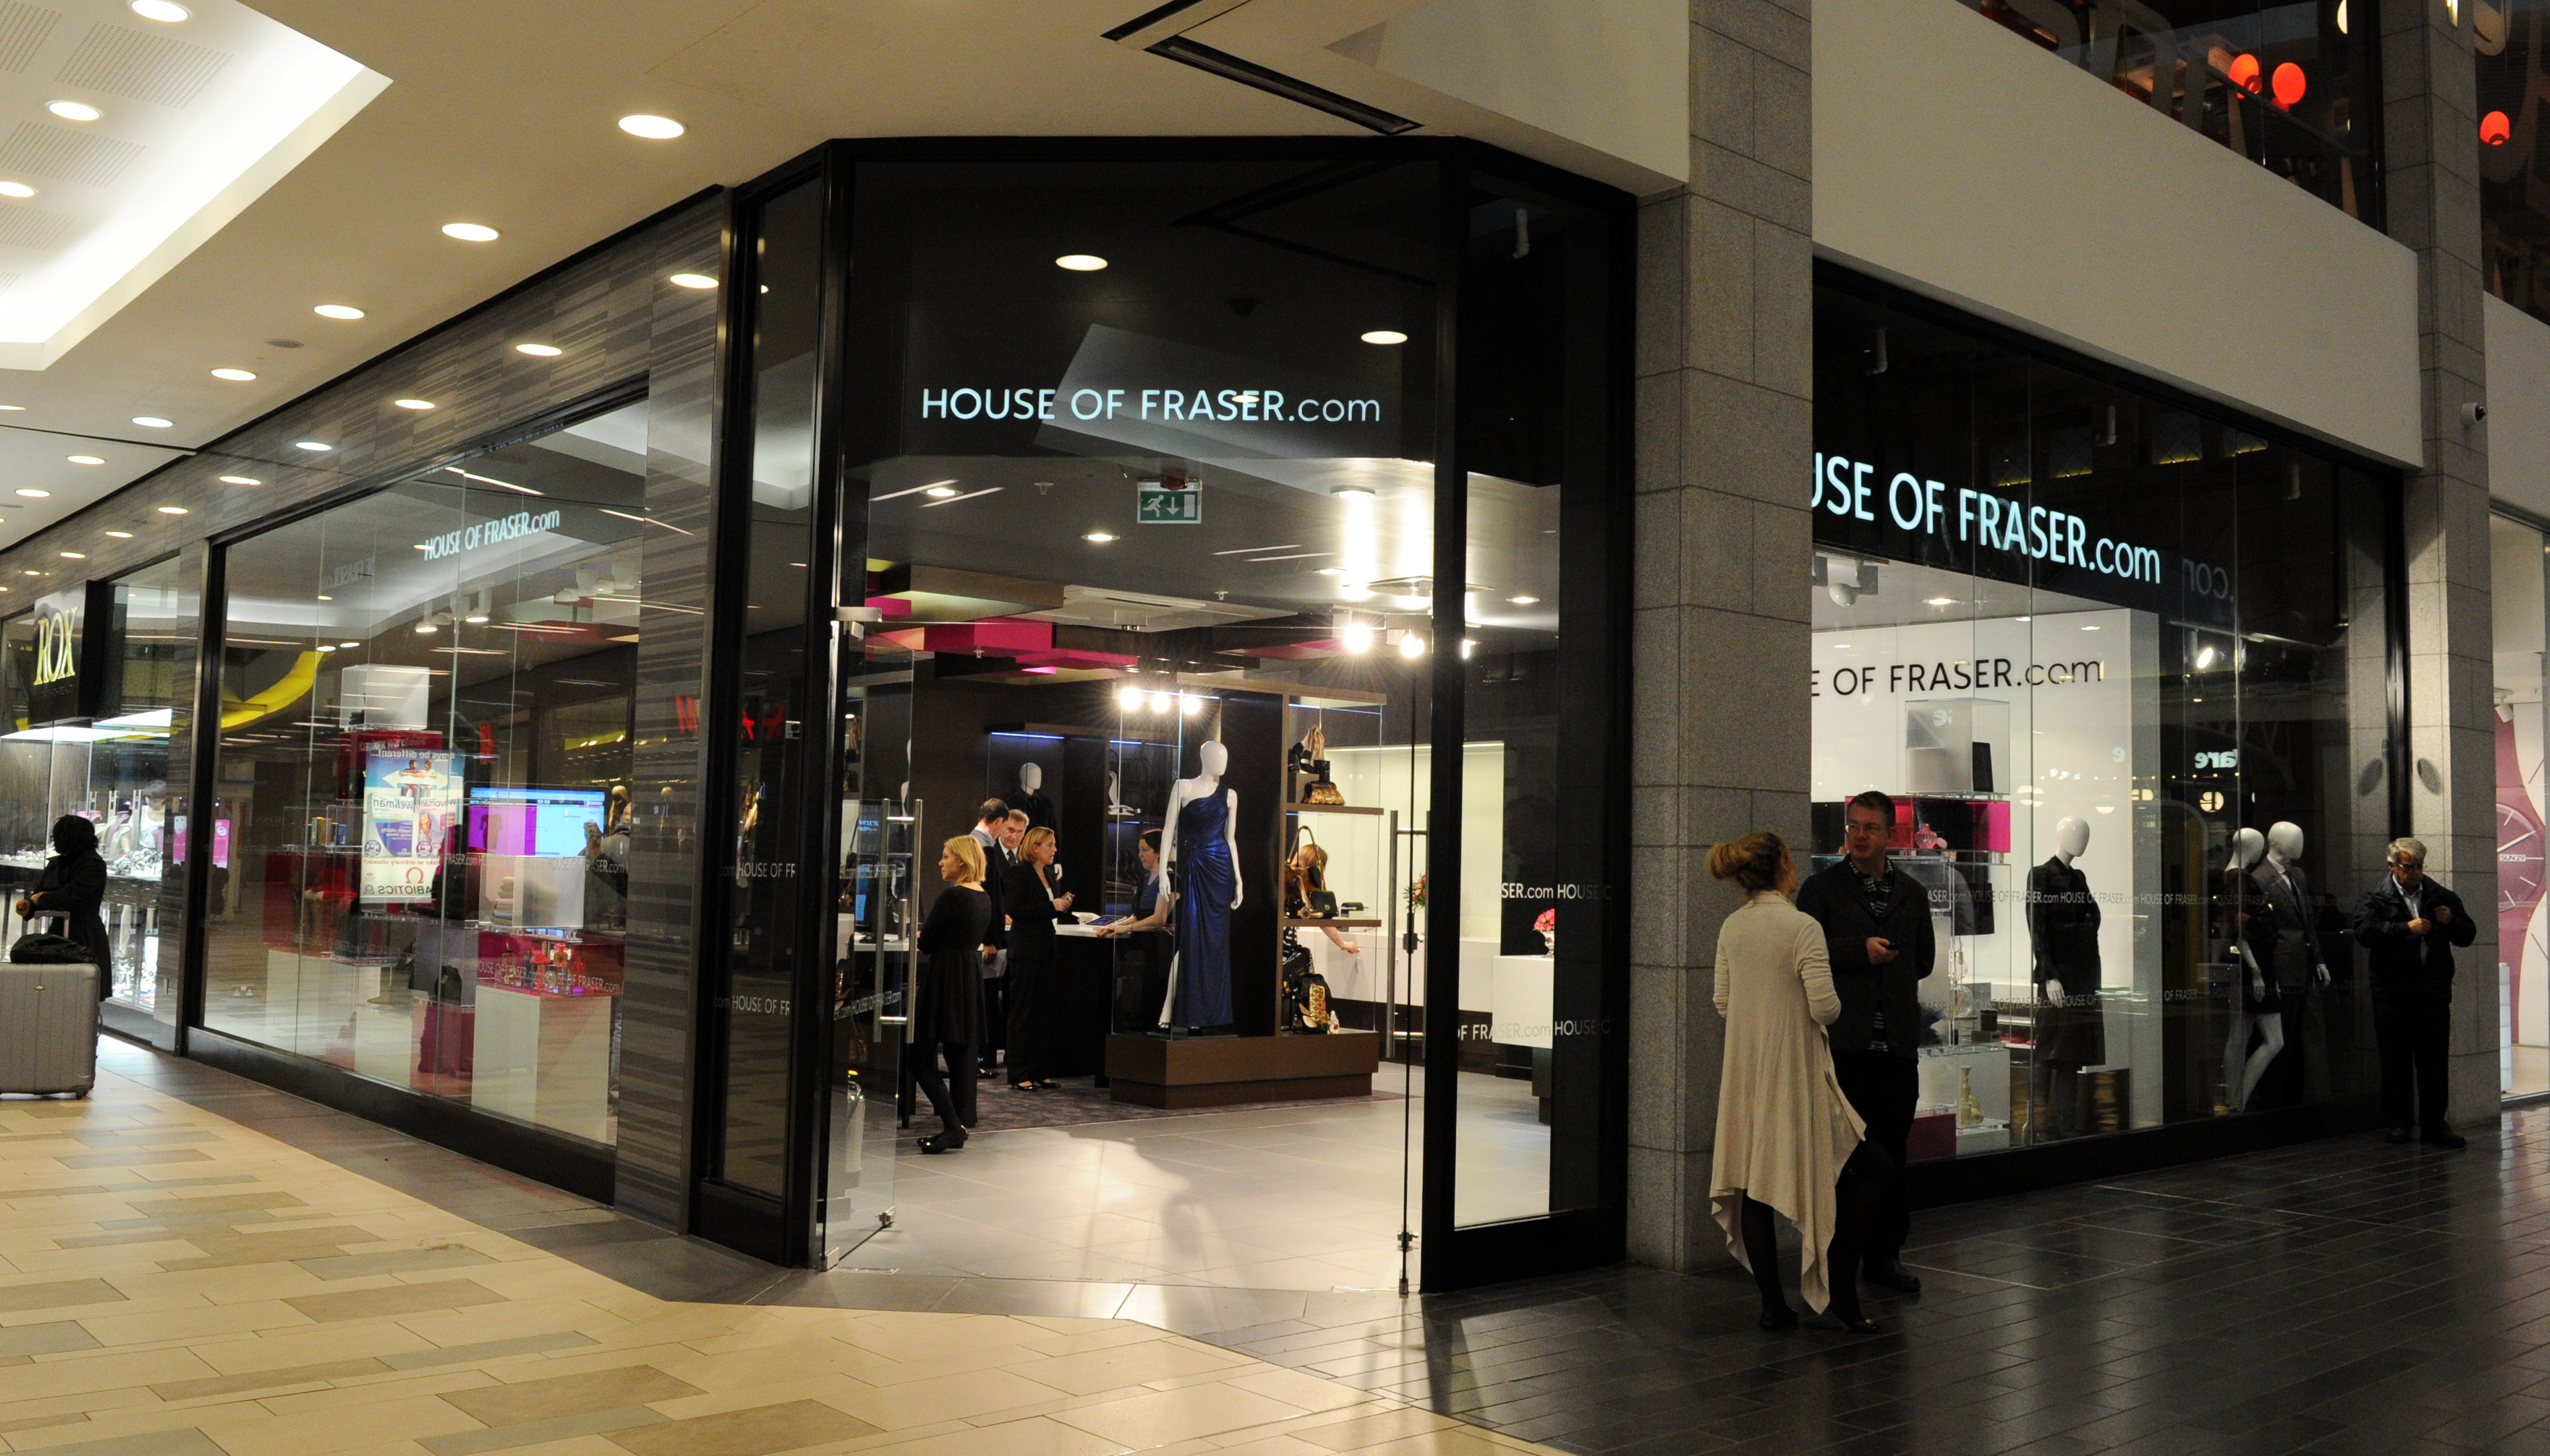 The House of Fraser store in Union Square.